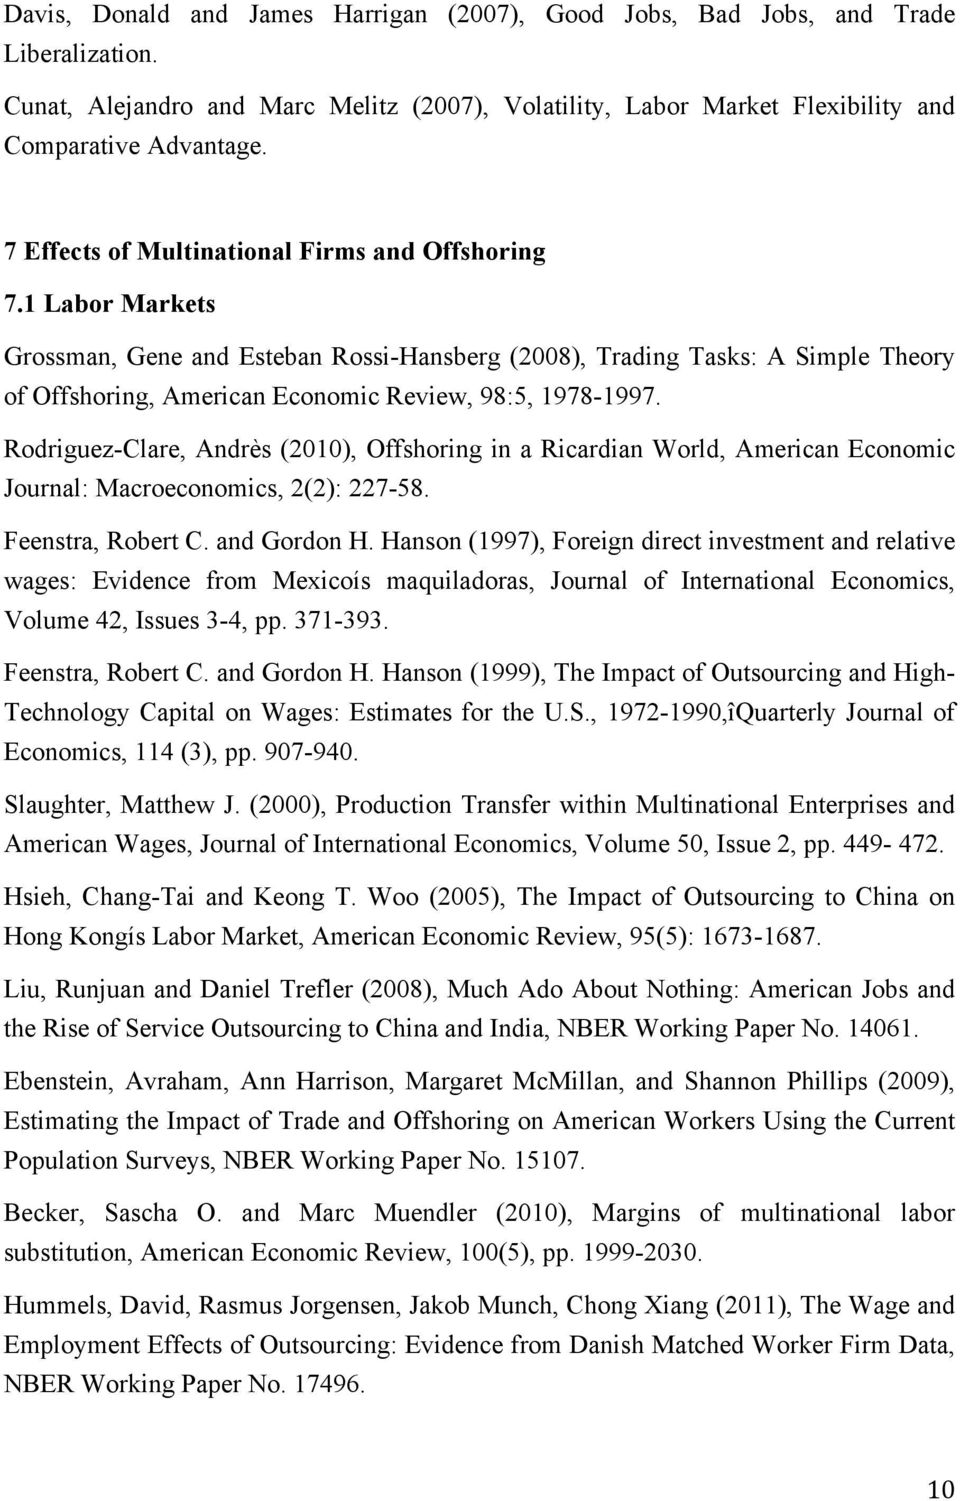 1 Labor Markets Grossman, Gene and Esteban Rossi-Hansberg (2008), Trading Tasks: A Simple Theory of Offshoring, American Economic Review, 98:5, 1978-1997.